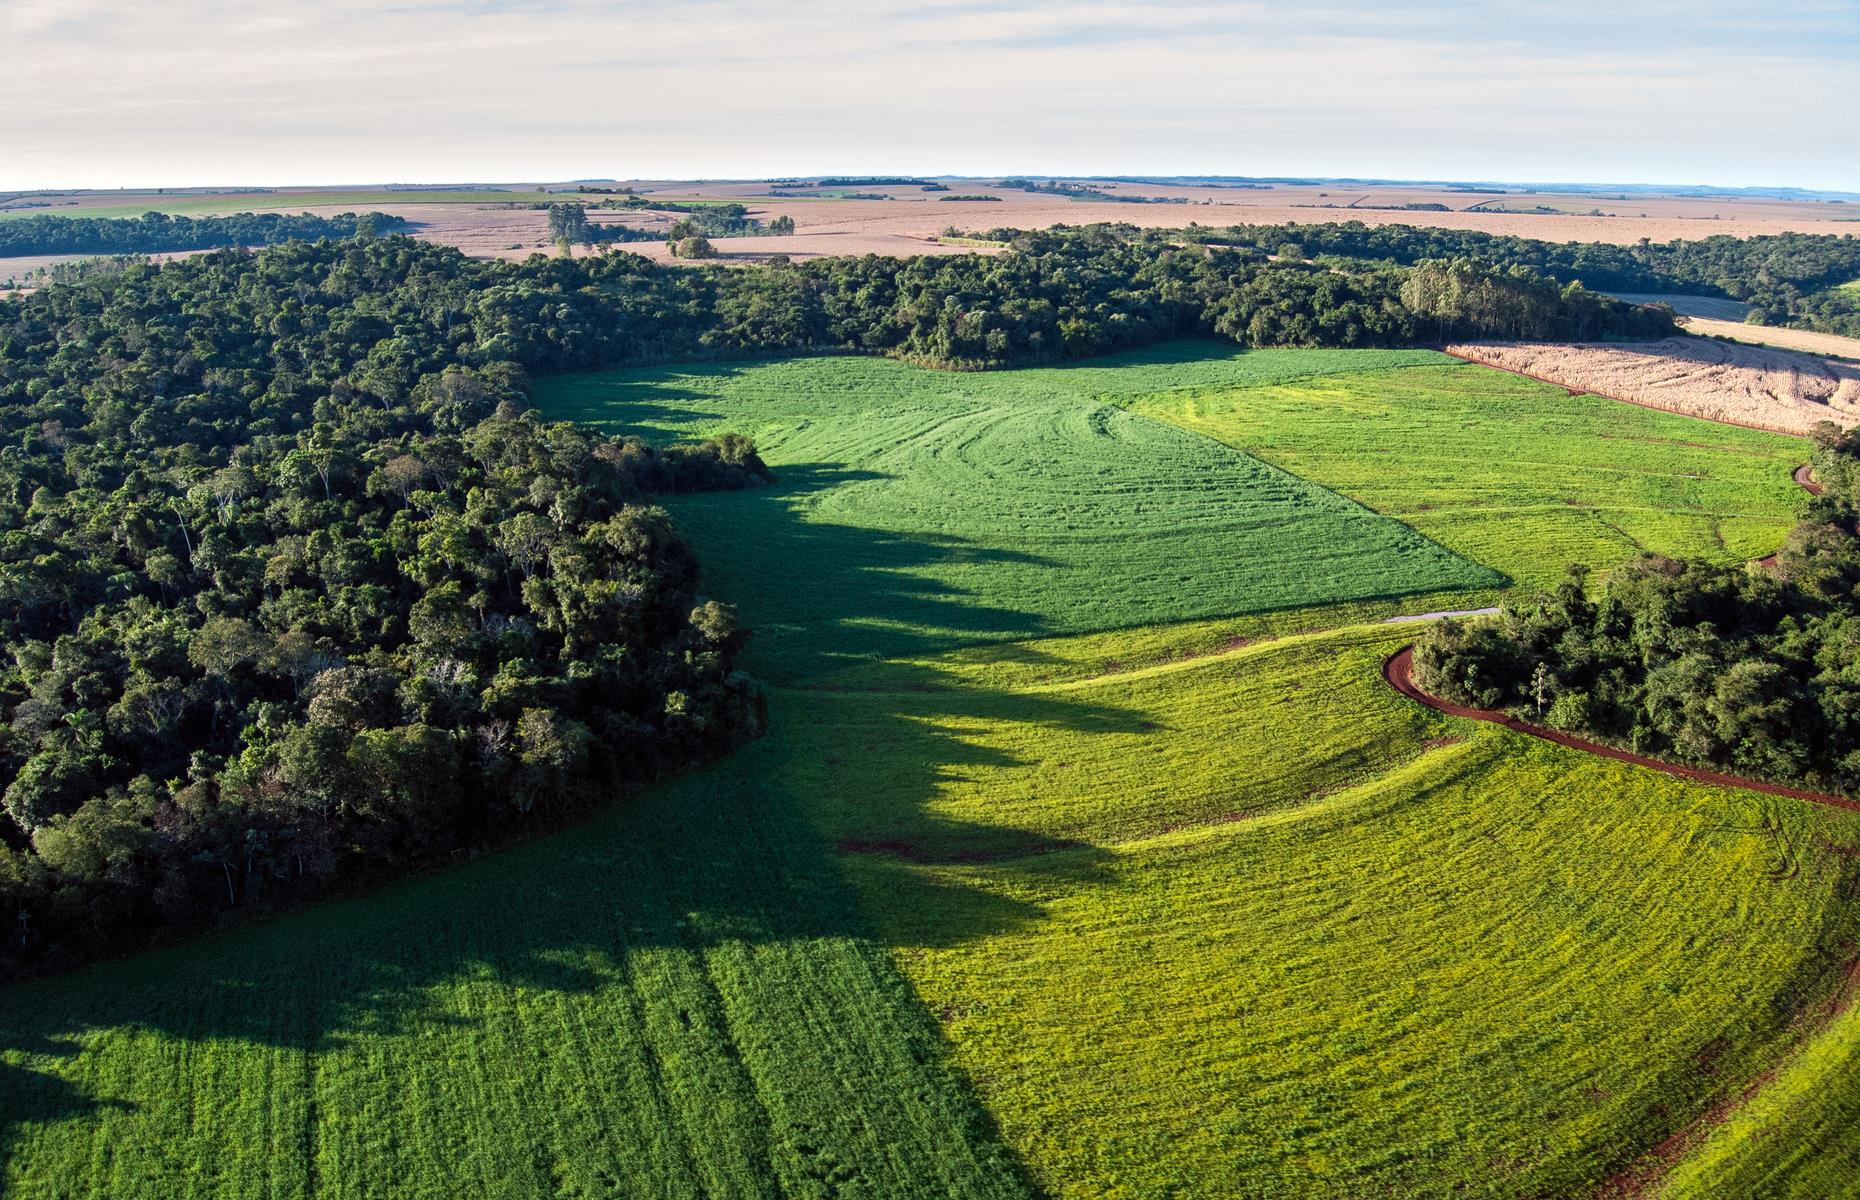 Slide 13 of 26: Agricultural developments, namelythe creation of soybean fields such as those pictured, plus deforestation for the production of timber, sugar cane, coffee and cattle, have resulted in severe habitat loss (only 7% of Brazil's Atlantic Forest exists today), forcing many endemic species to the brink of extinction.